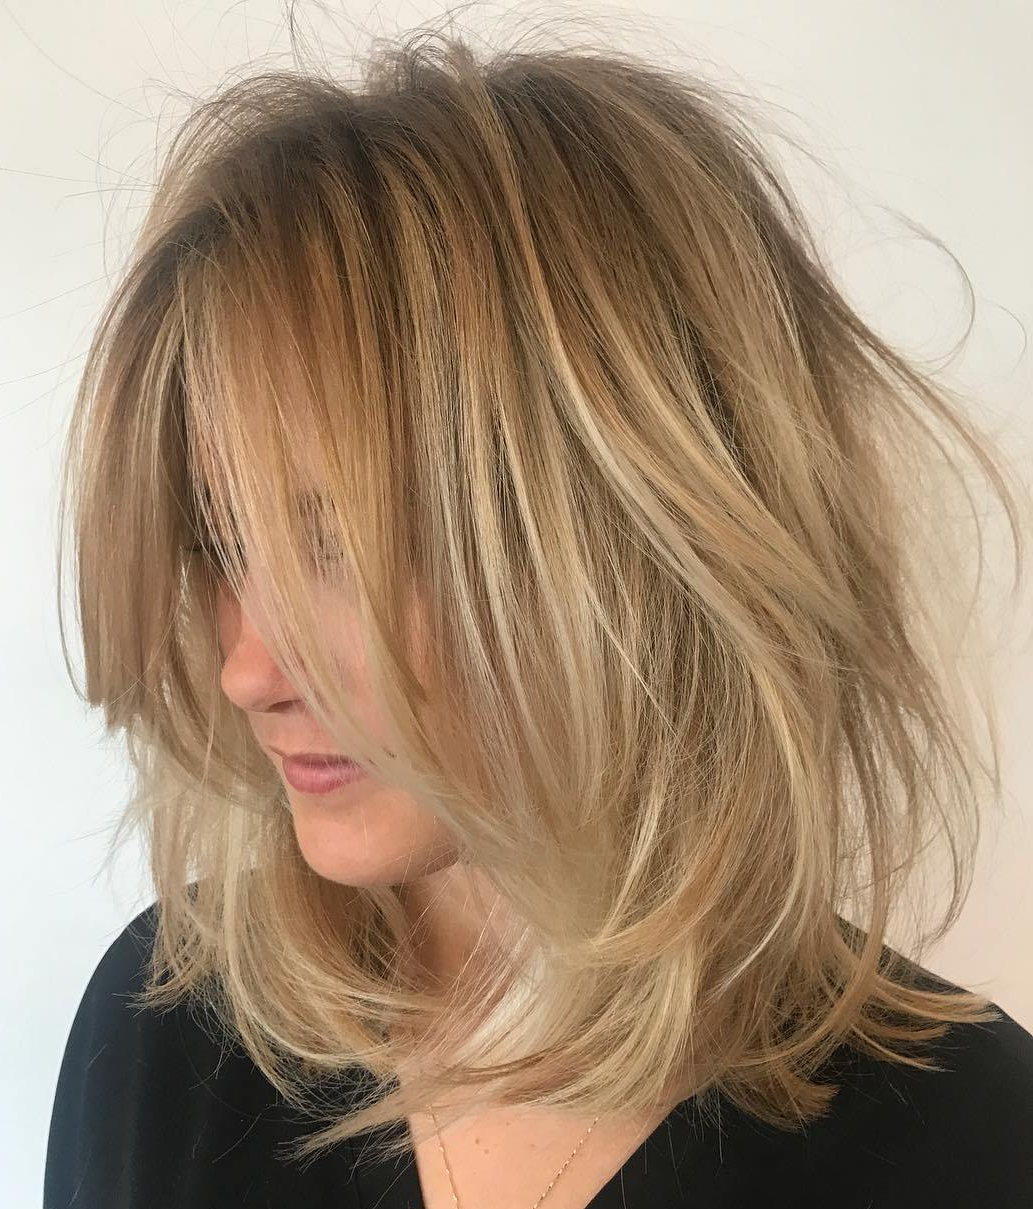 70 Devastatingly Cool Haircuts For Thin Hair Throughout Layered Bob Hairstyles For Fine Hair (View 8 of 20)